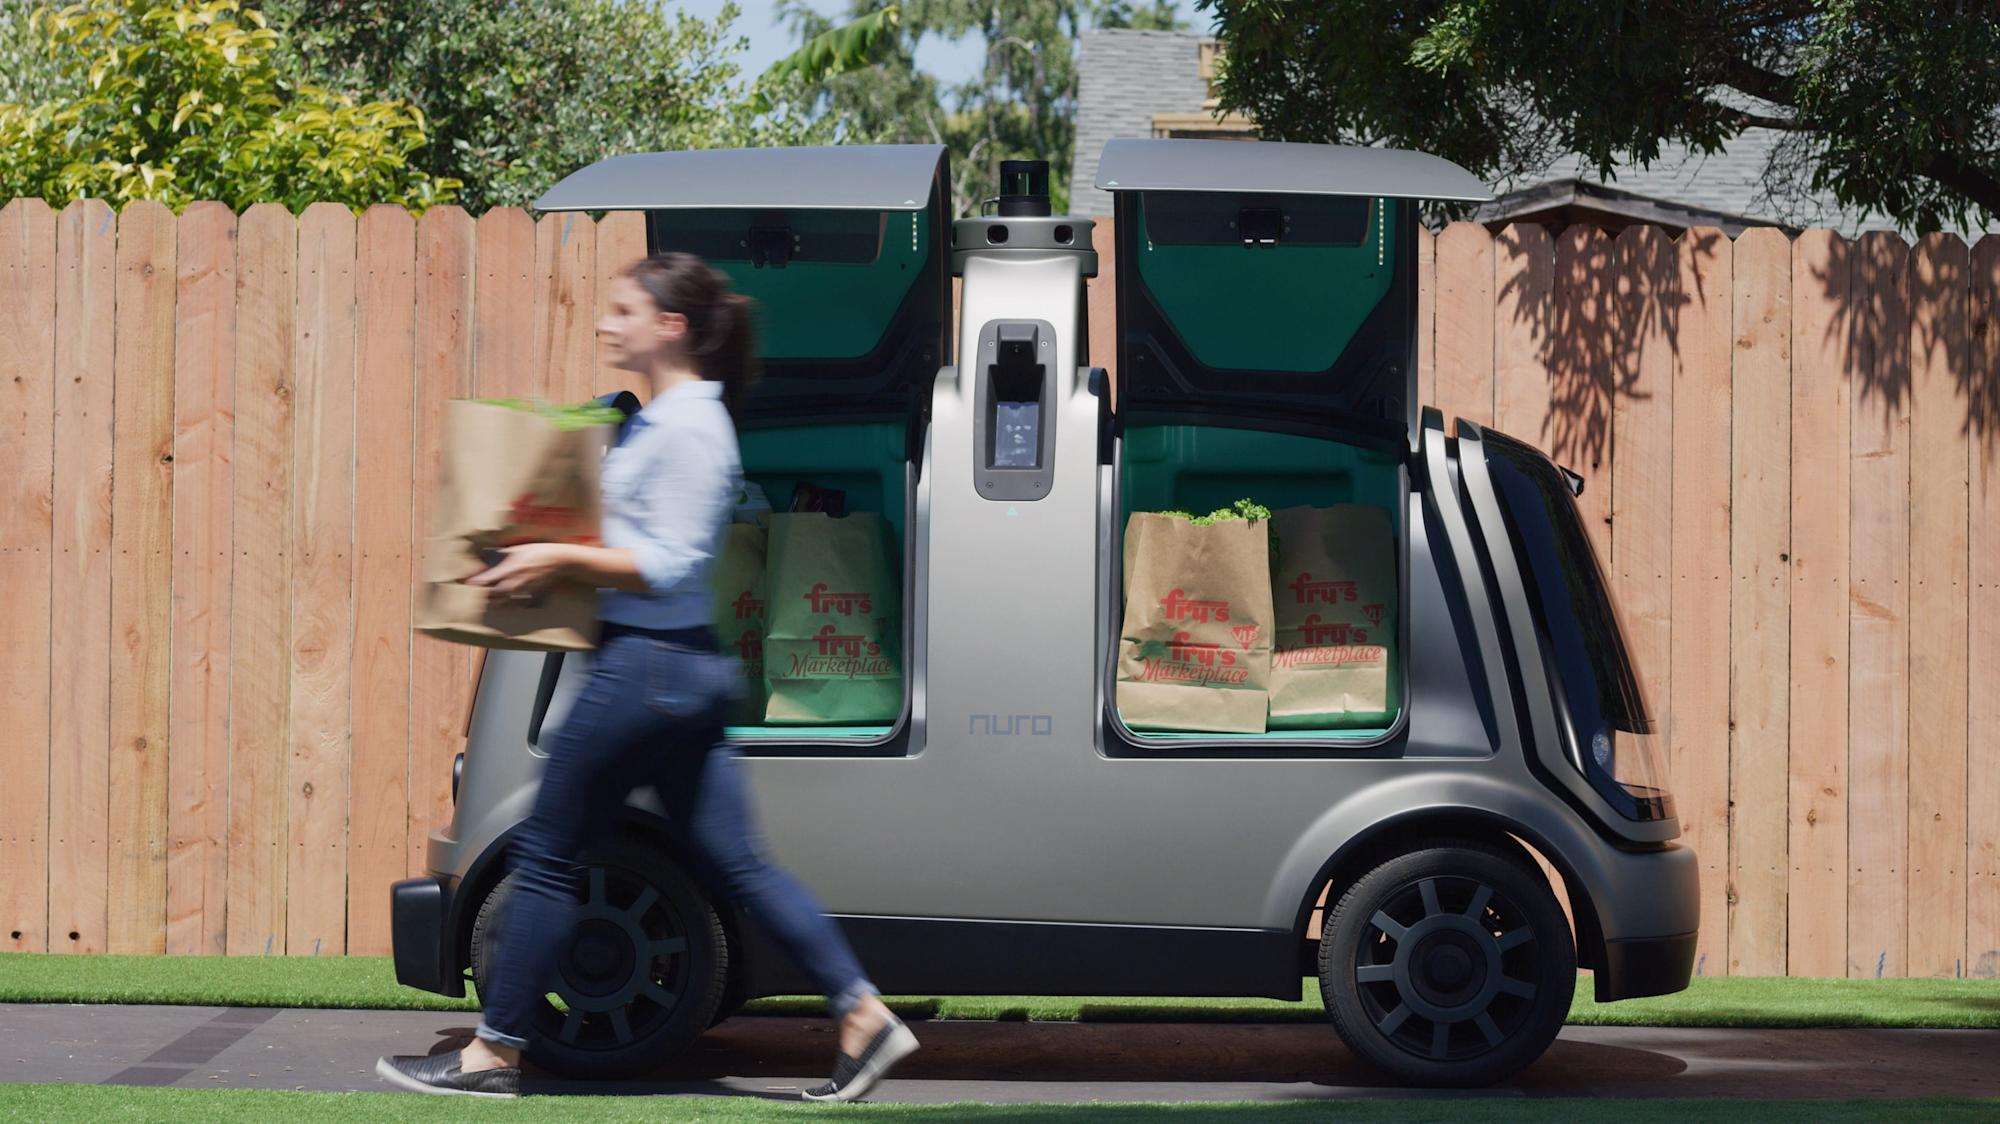 Nuro teams up with Domino's for driverless deliveries